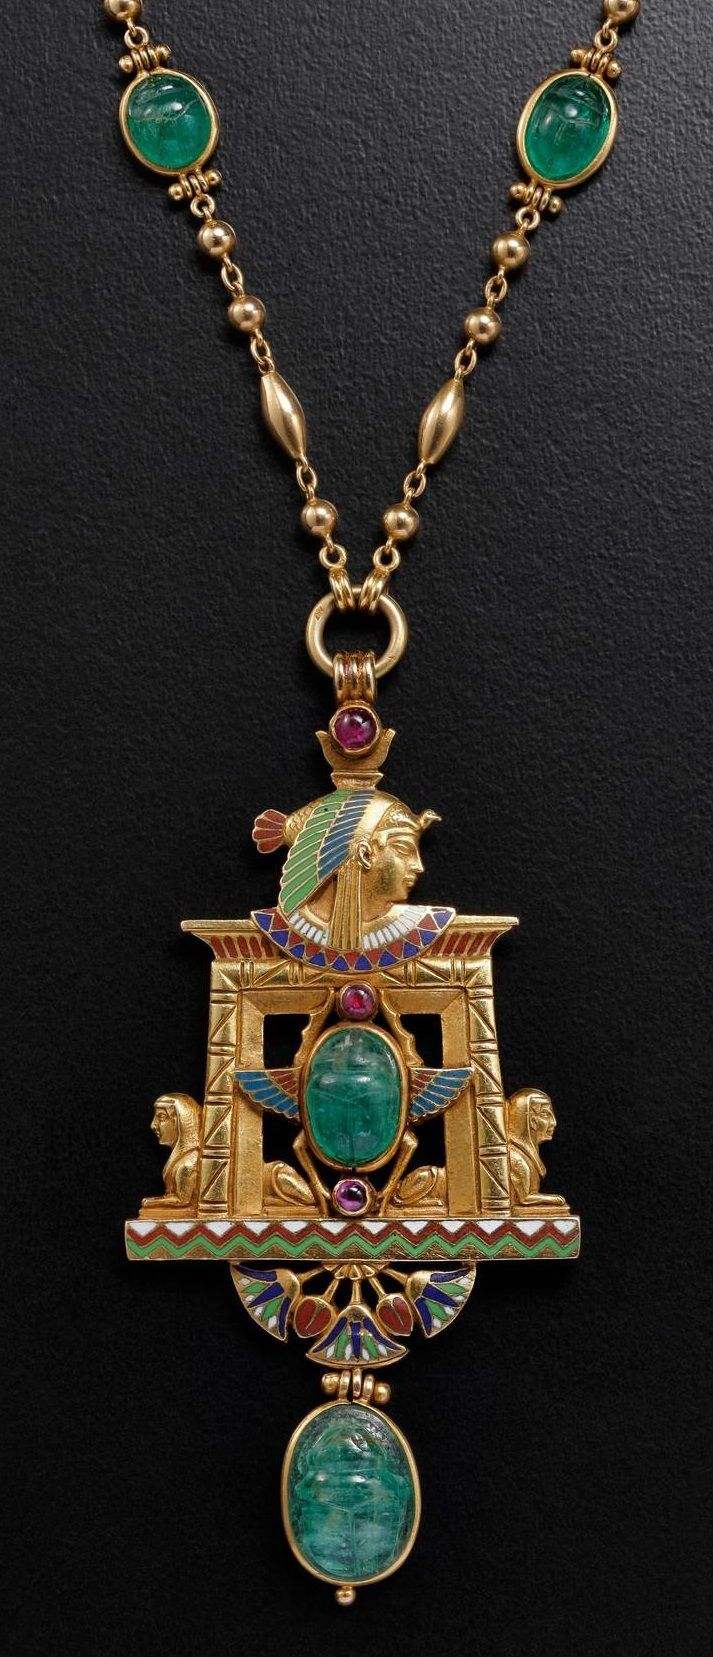 Jules wiese pearl enamel emerald gold egypt pendant egyptian jules wiese 1818 1890 egyptian revival pendant yellow gold enamel emeralds pearls paris circa 1875 aloadofball Image collections